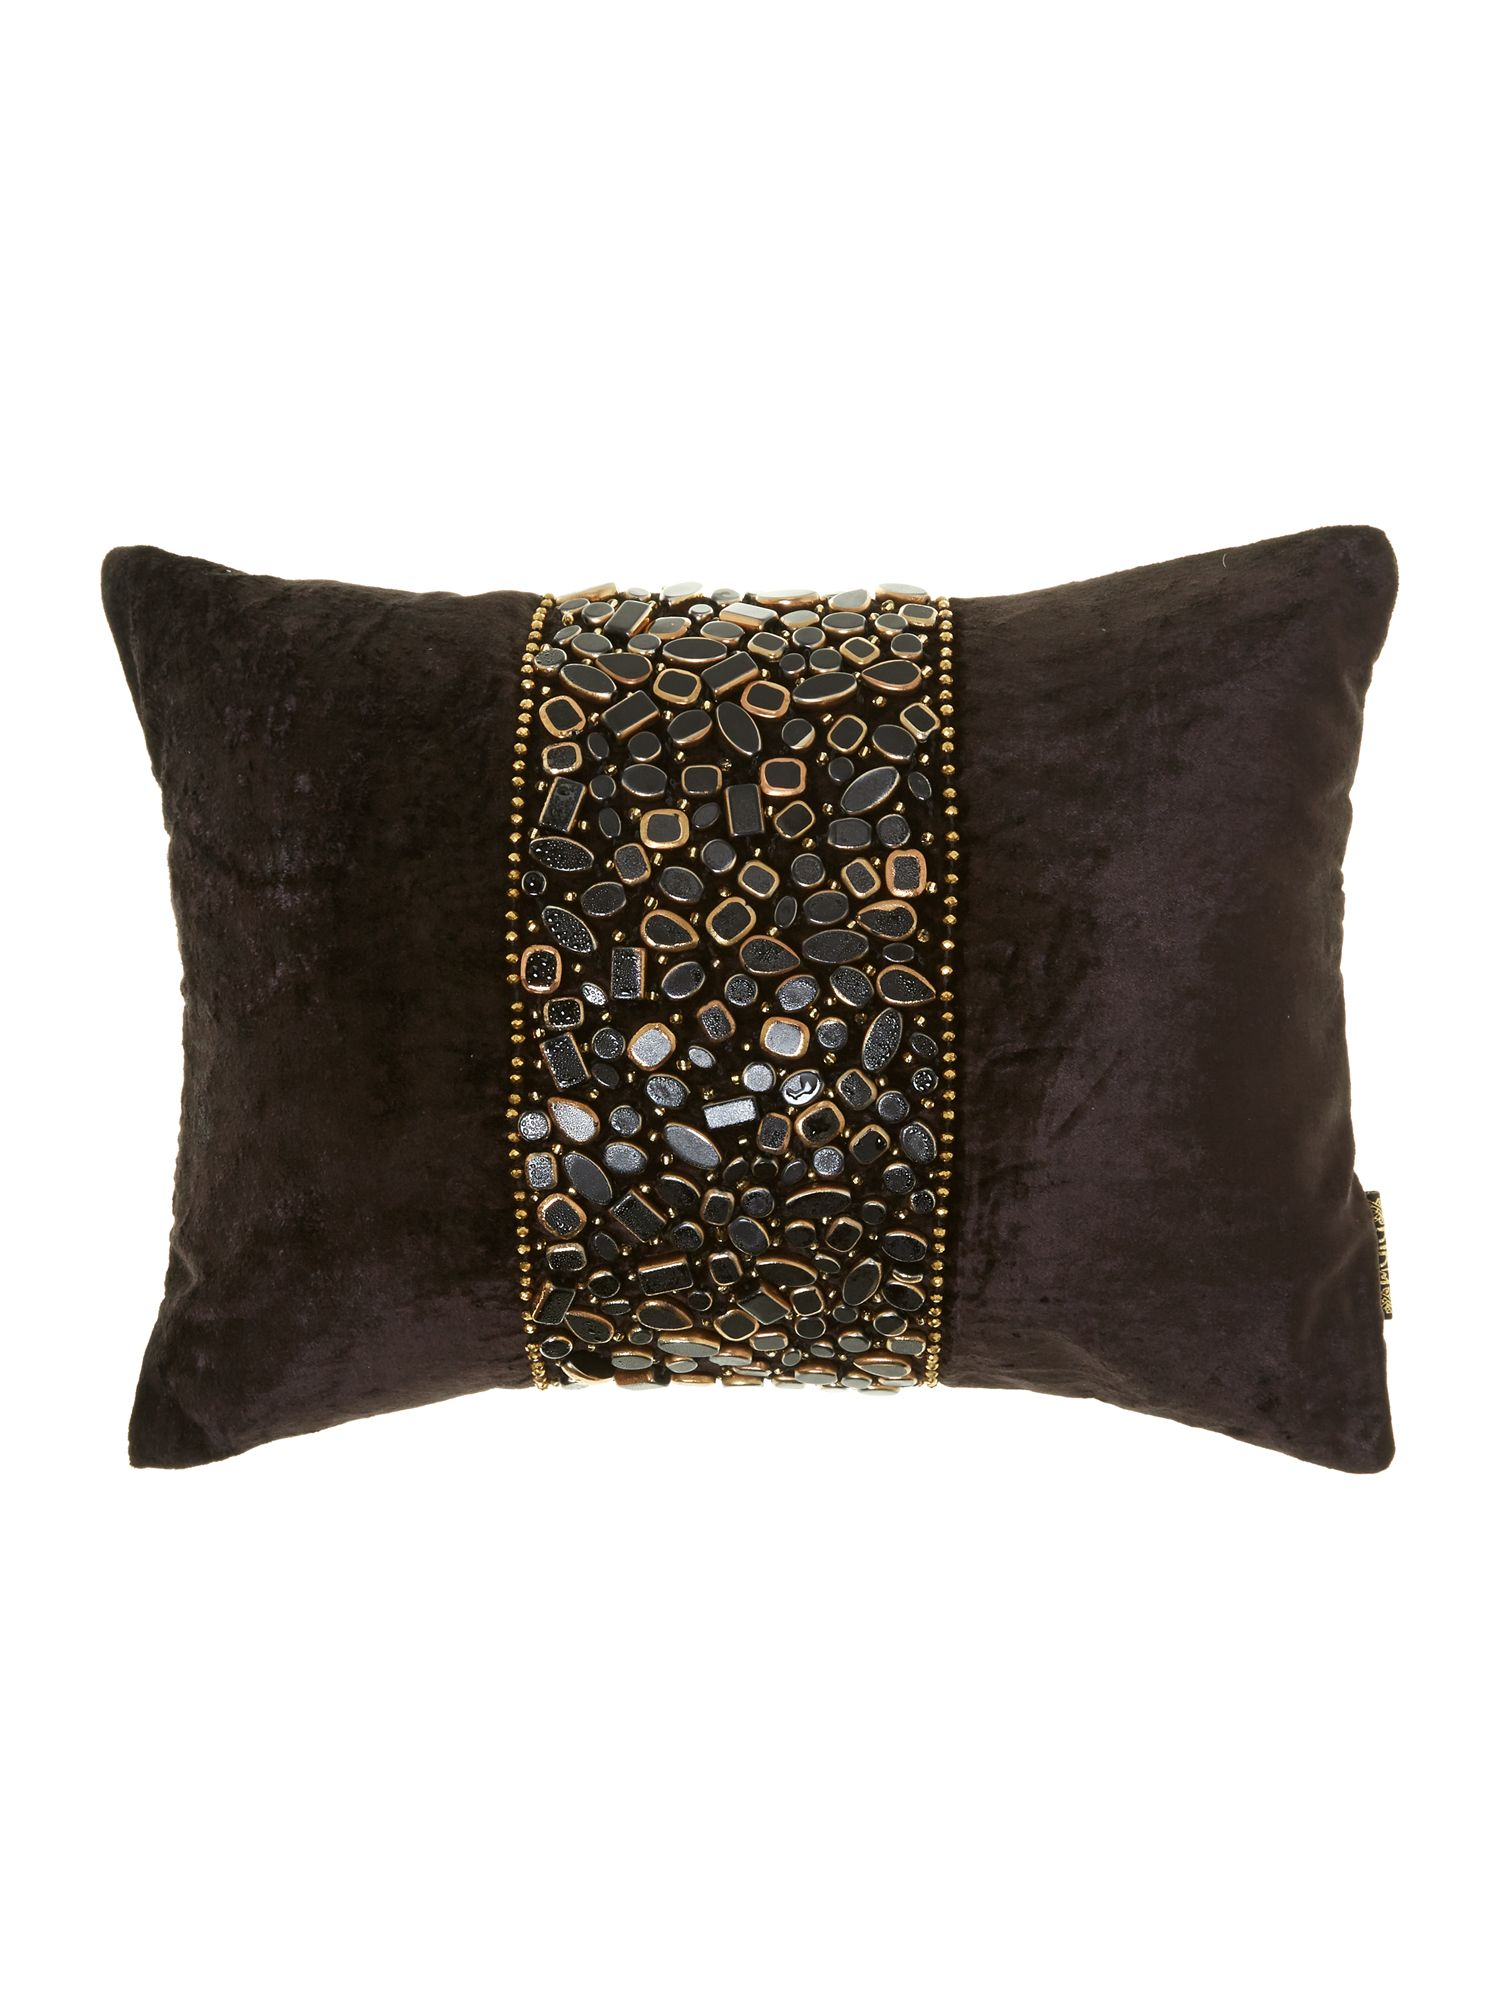 Sultan black and gold beaded cushion